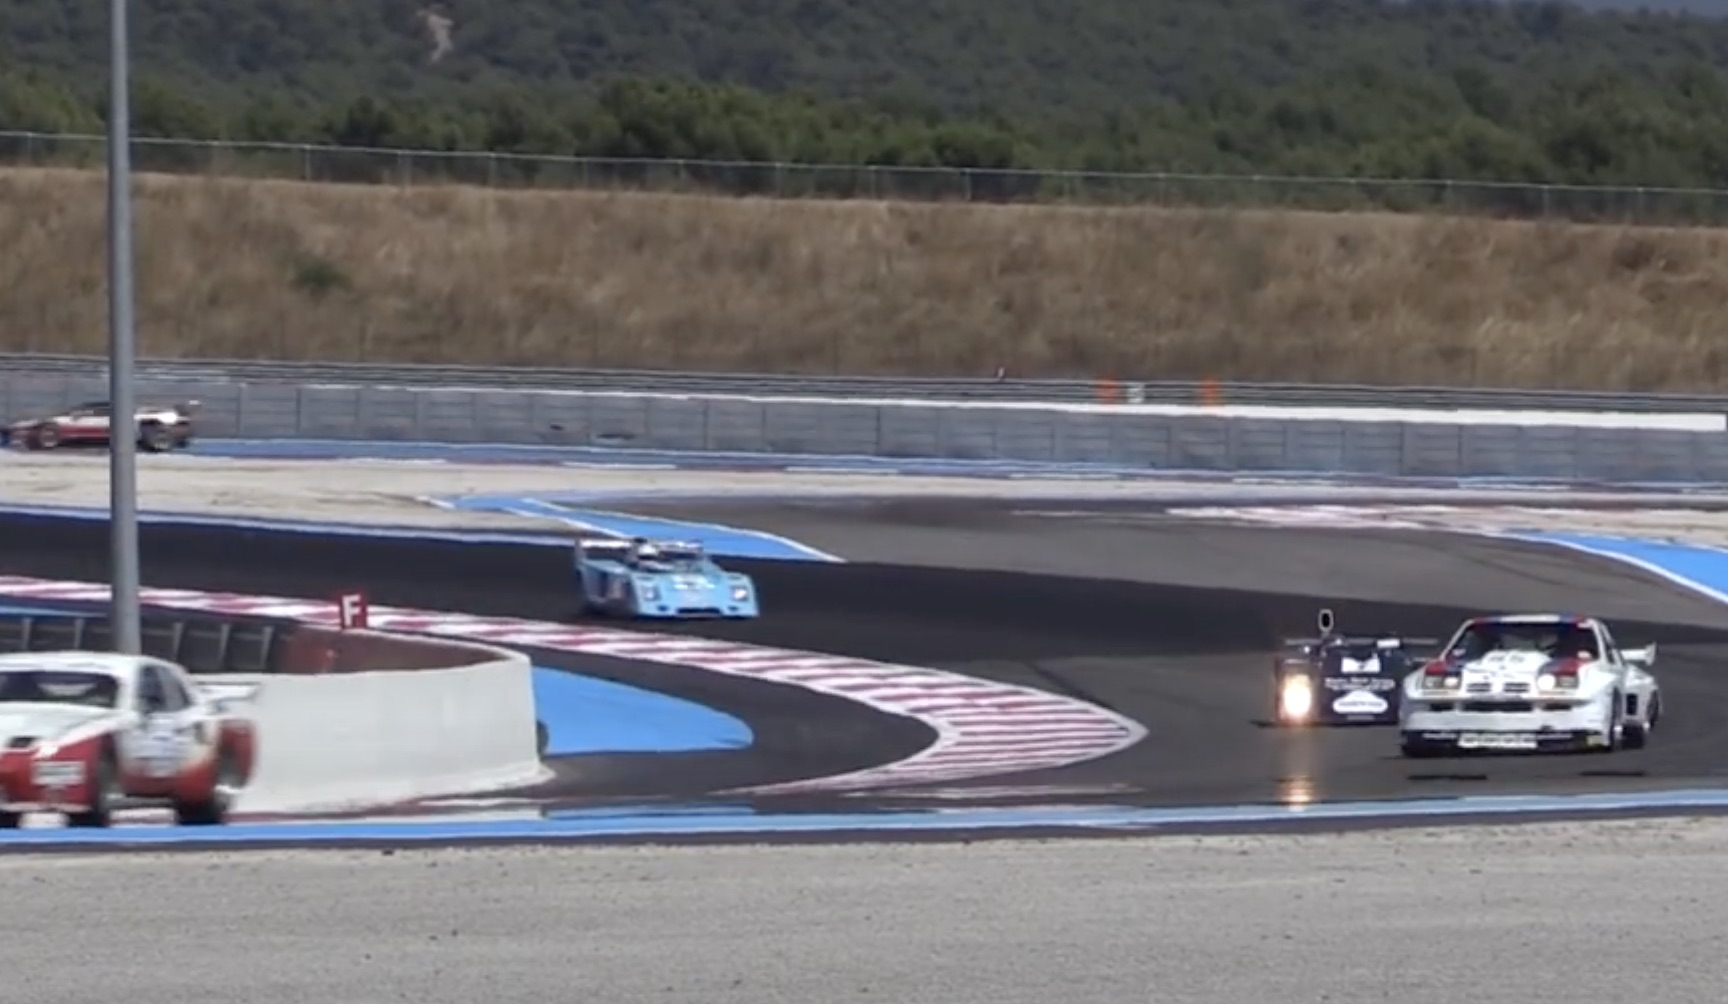 Morning Symphony: Binaural Audio Of Historic Screamers At Circuit Paul Ricard